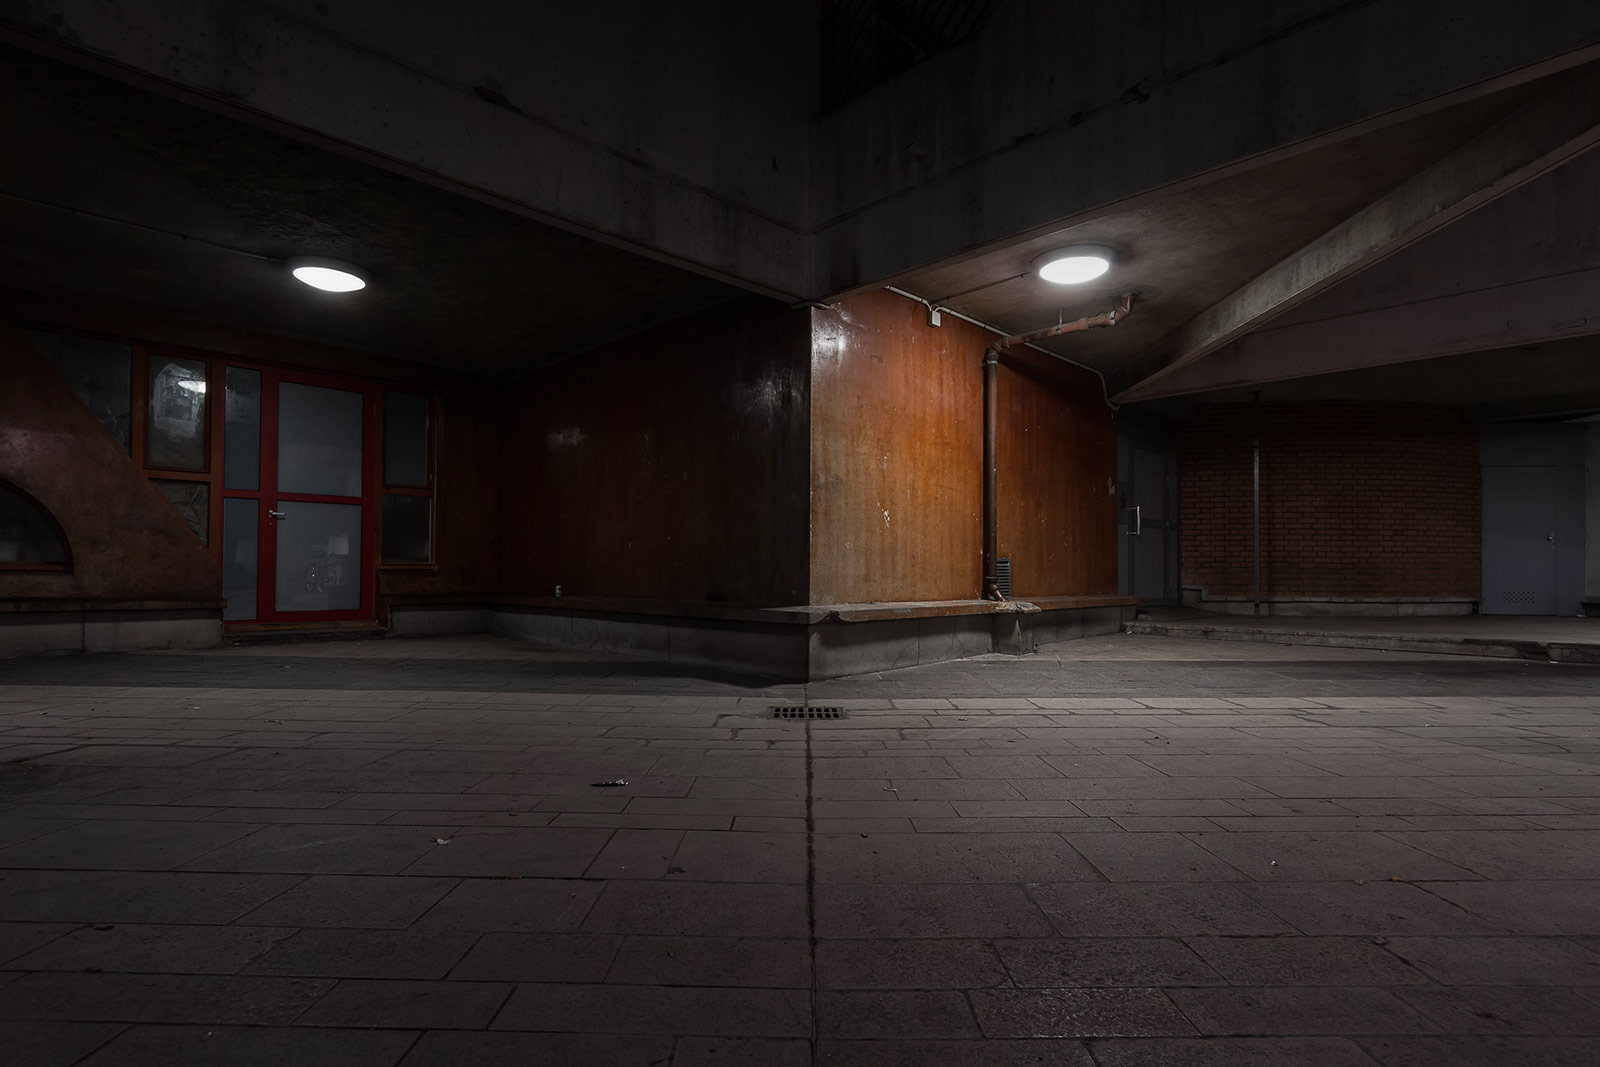 Between two worlds - Night urban photography